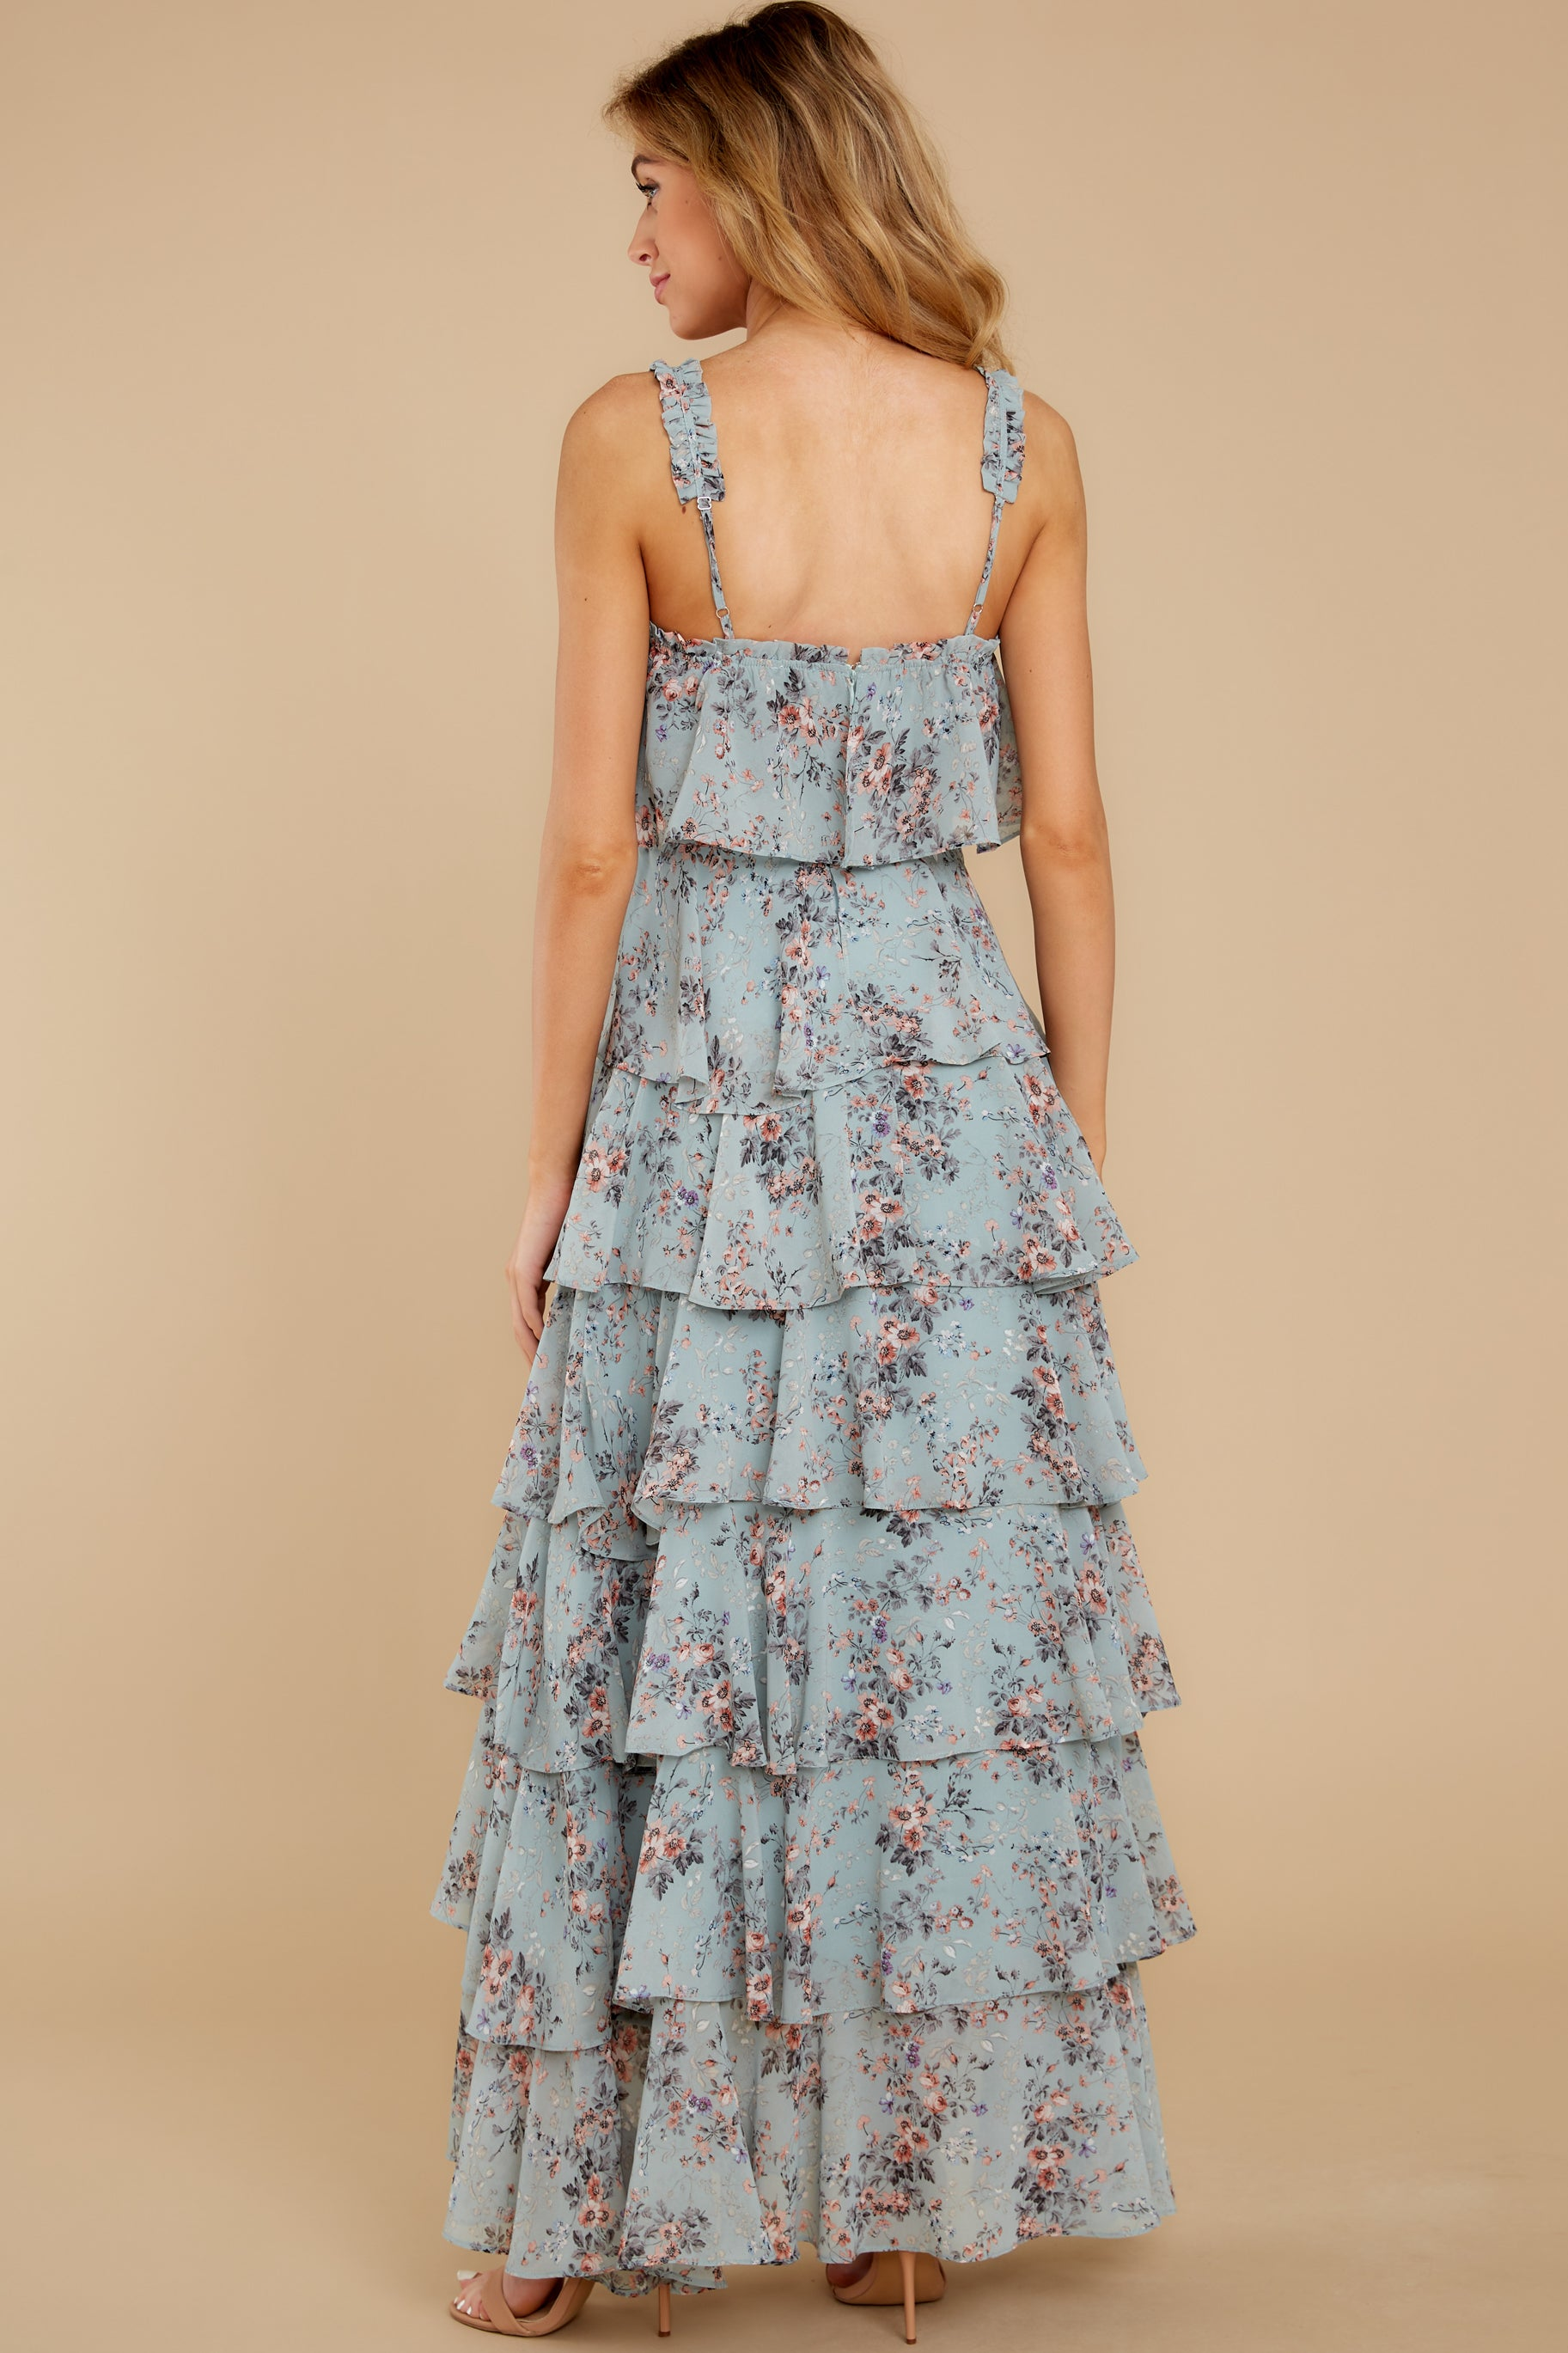 8 The Story's Not Over Light Blue Floral Print Maxi Dress at reddress.com